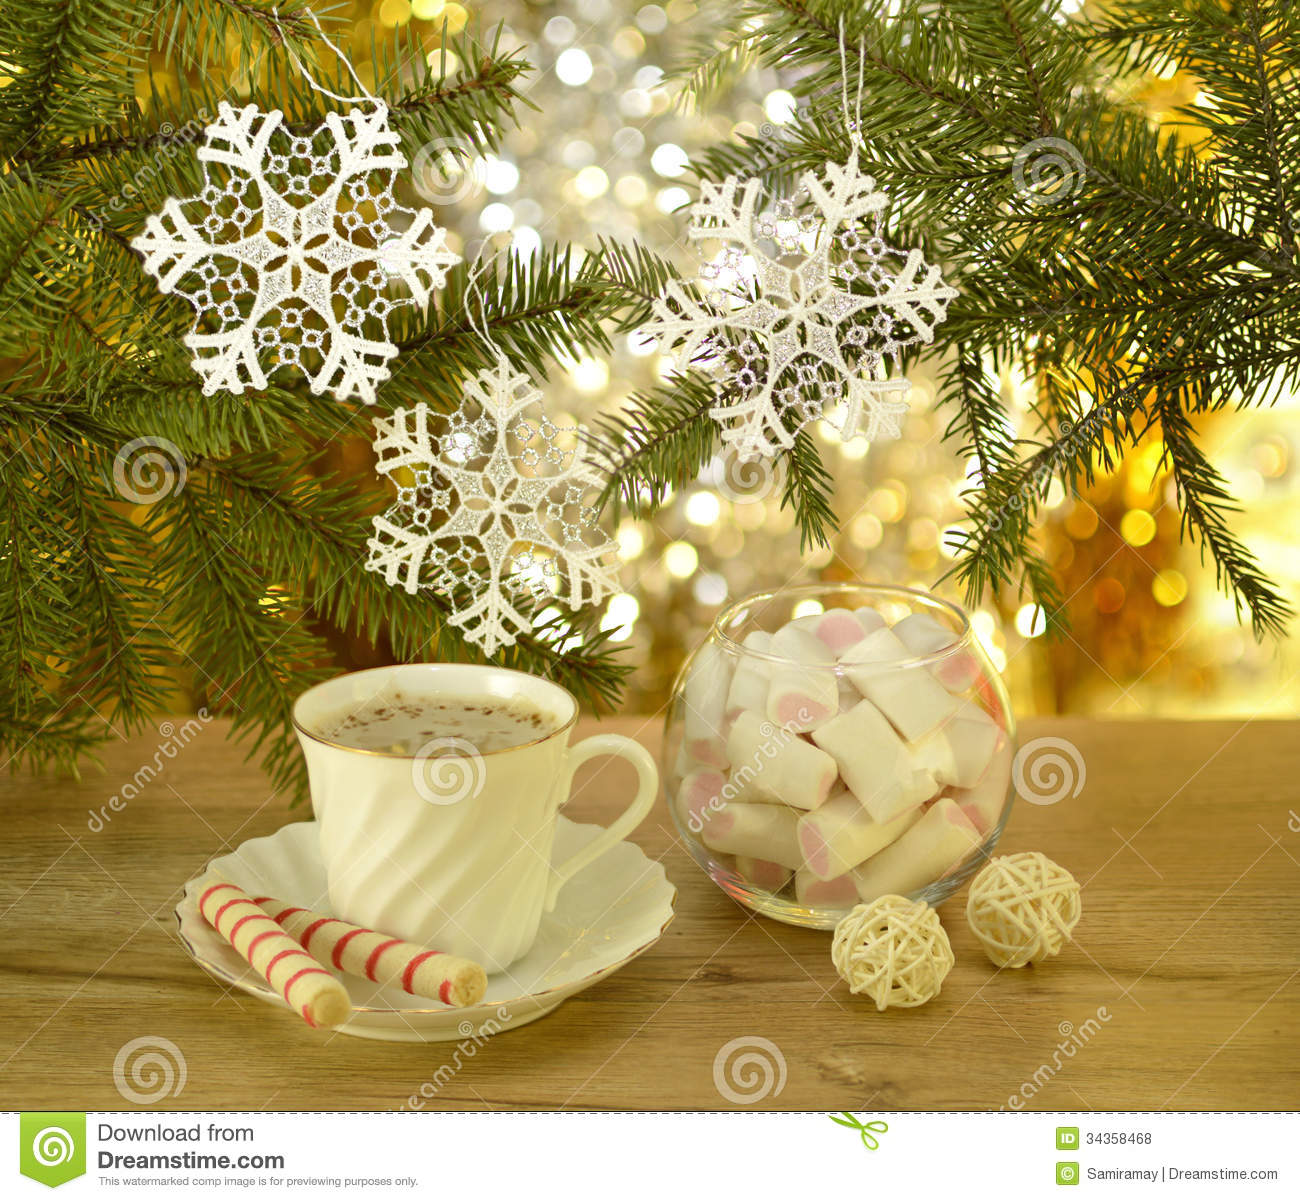 Christmas Decorations For Coffee Shops: Christmas Coffee With Sweets Stock Photo